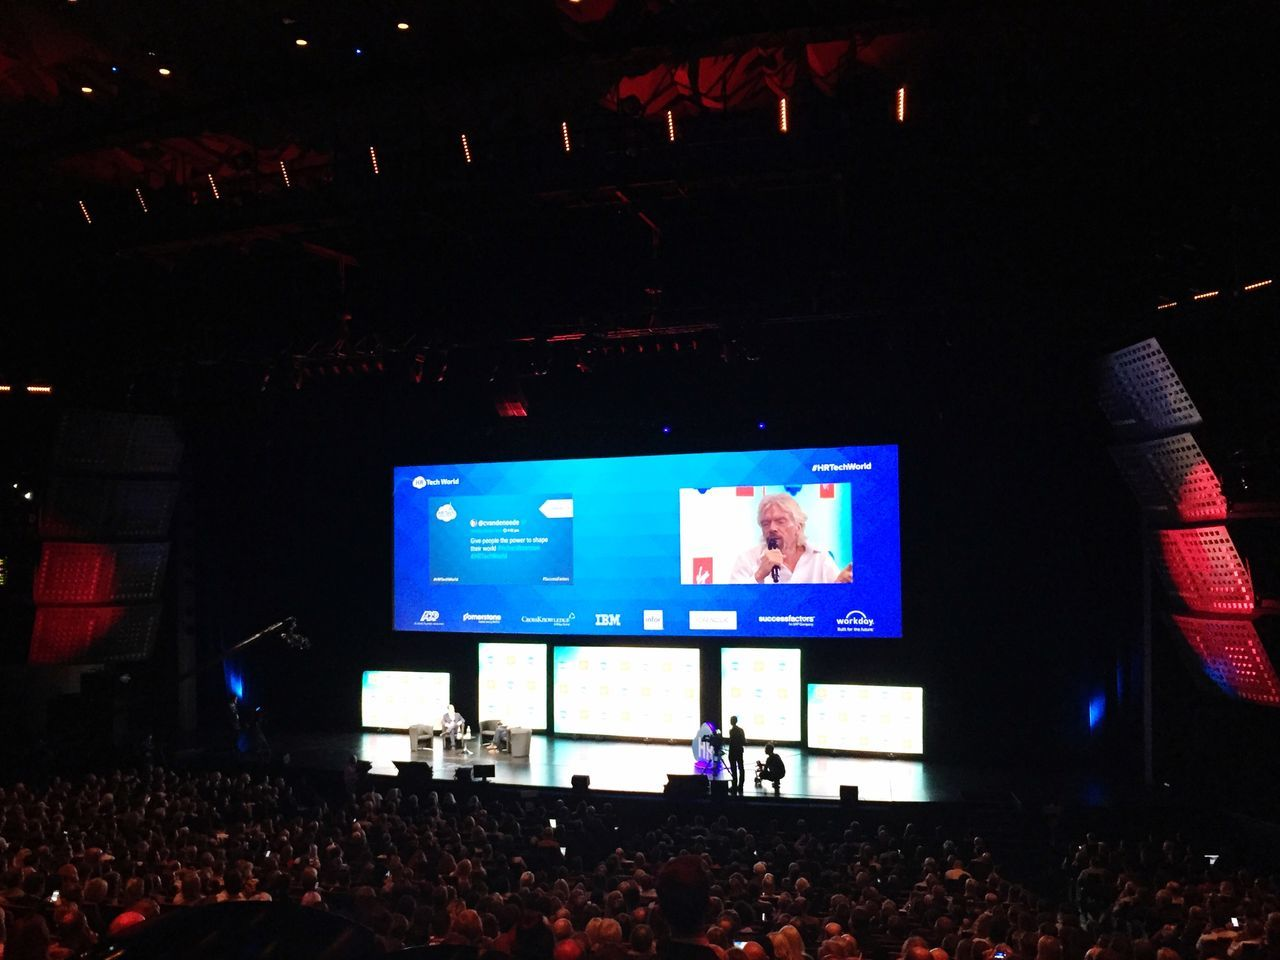 HR Tech World Congress 2015 in Paris, listening to the Amazing and Inspiring Richard Branson At A Conference